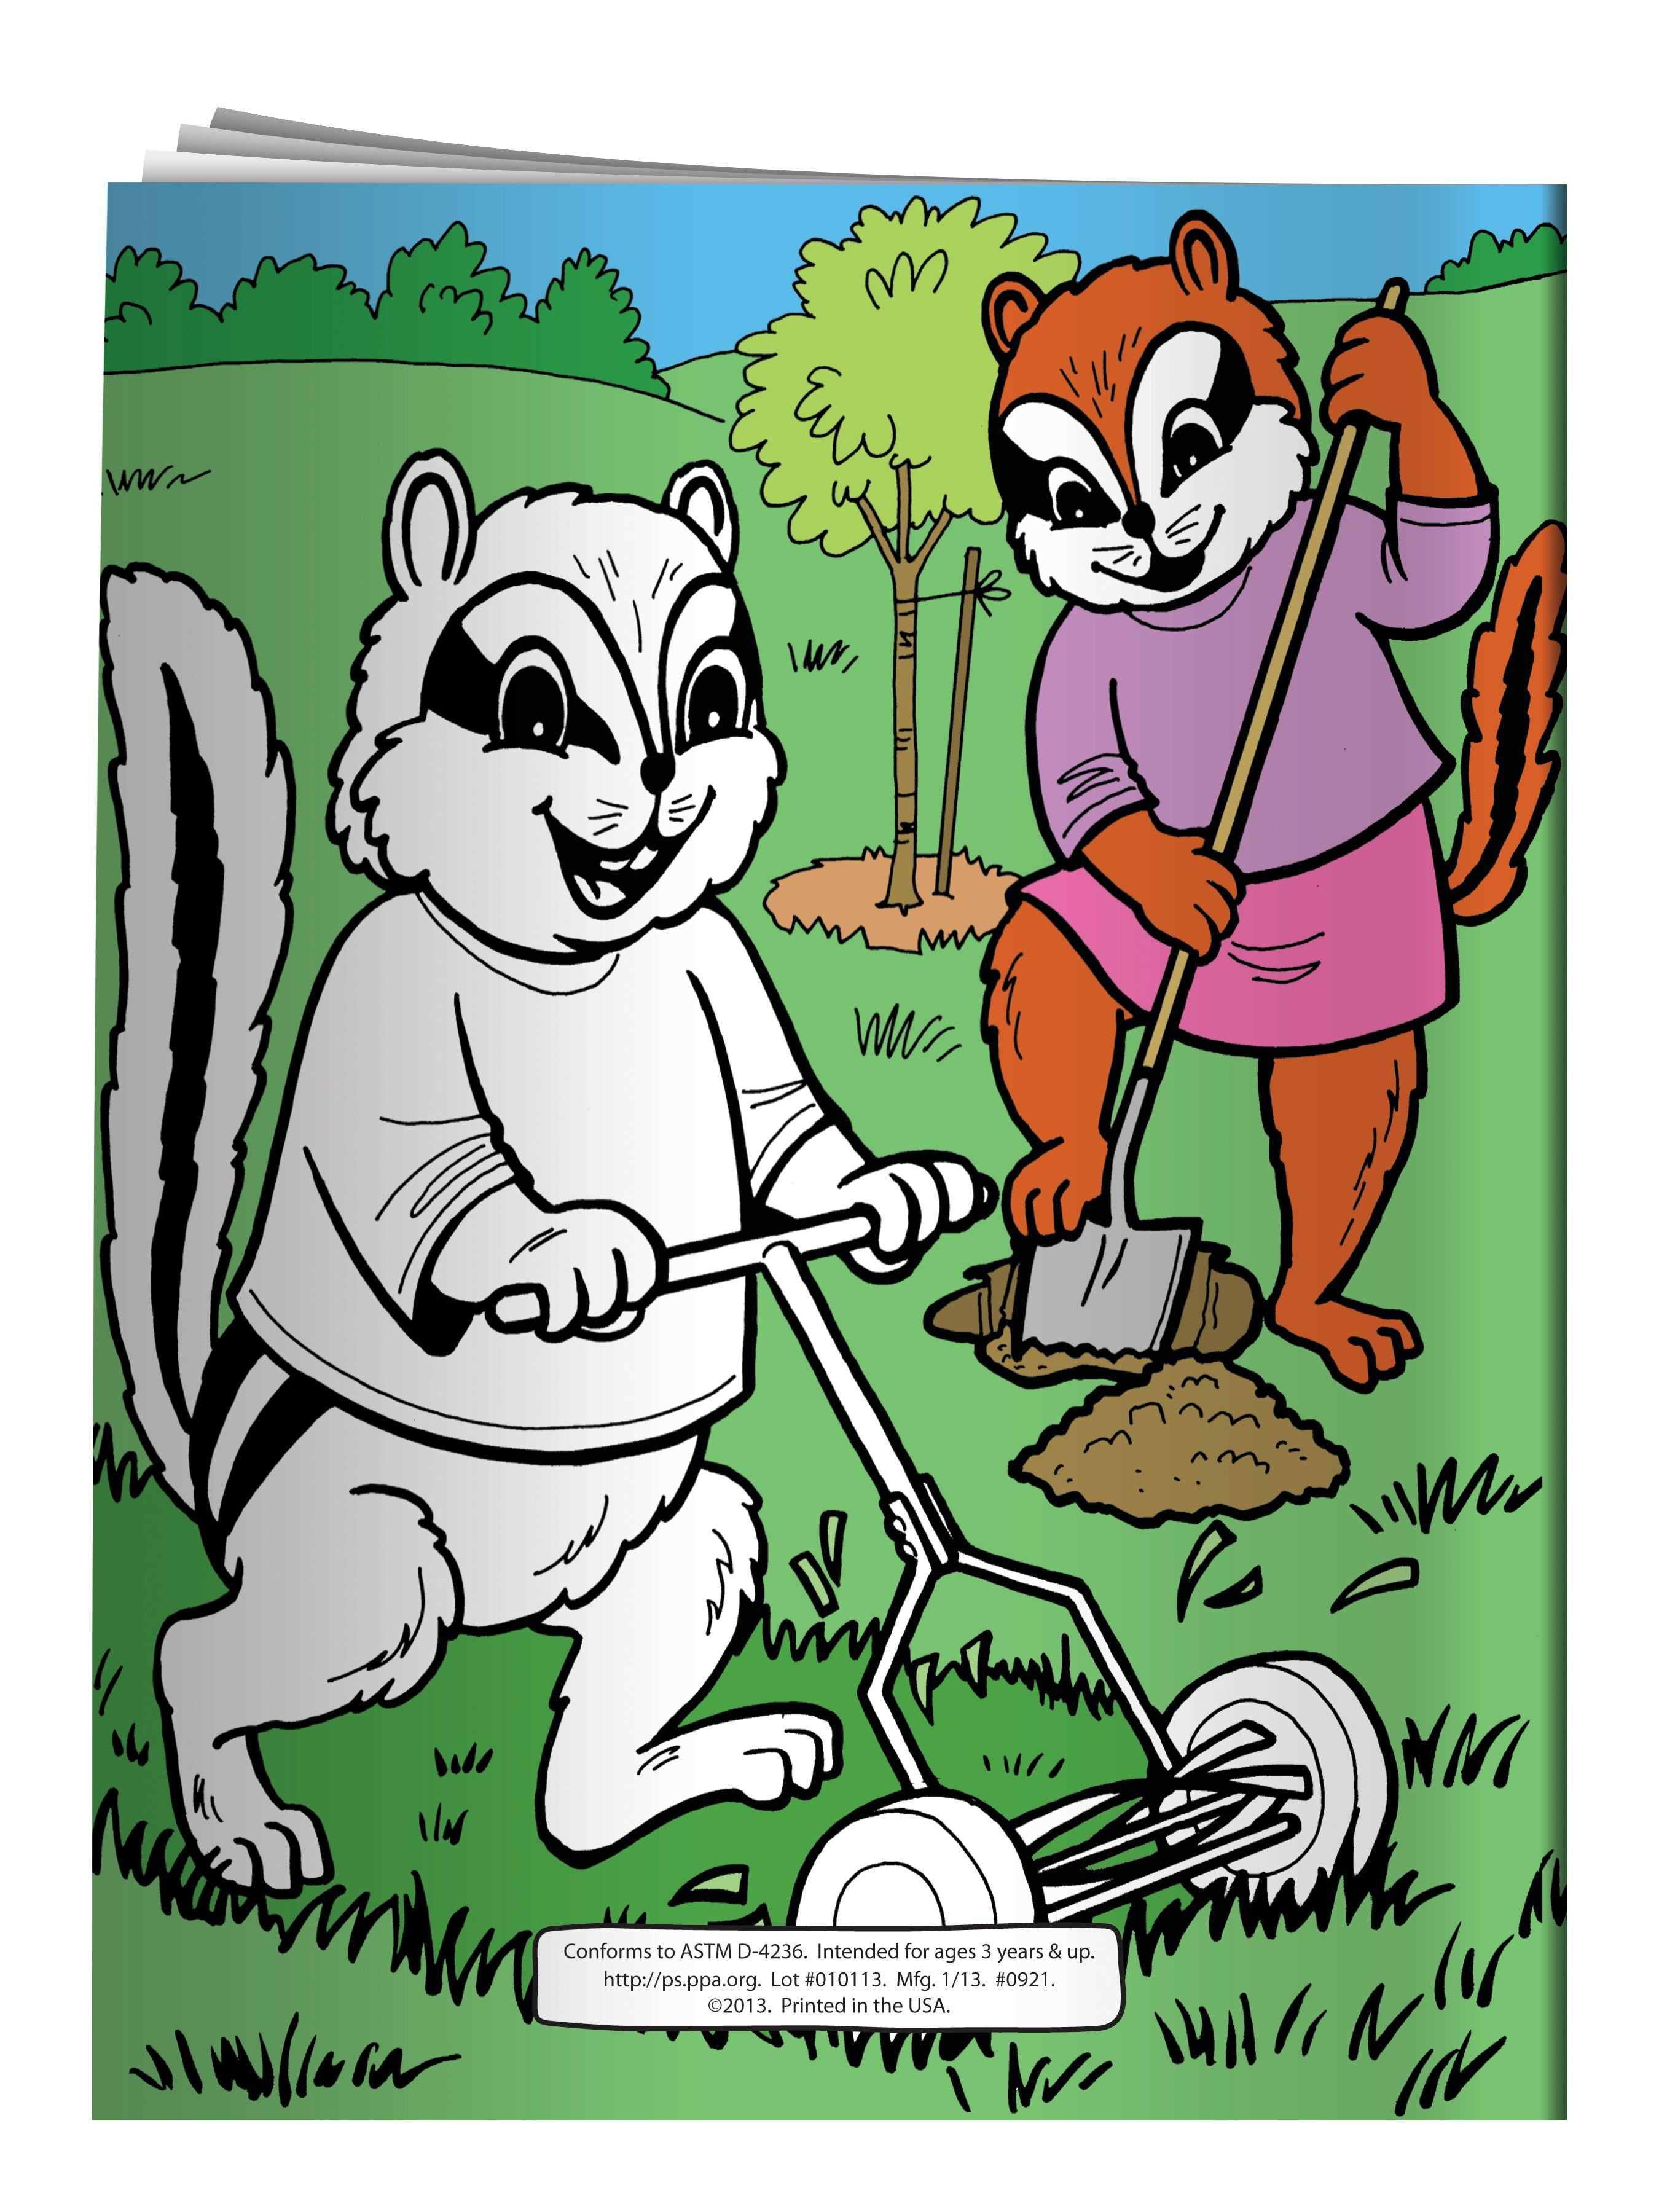 Kids Care for a Clean Environment Coloring & Activity Book